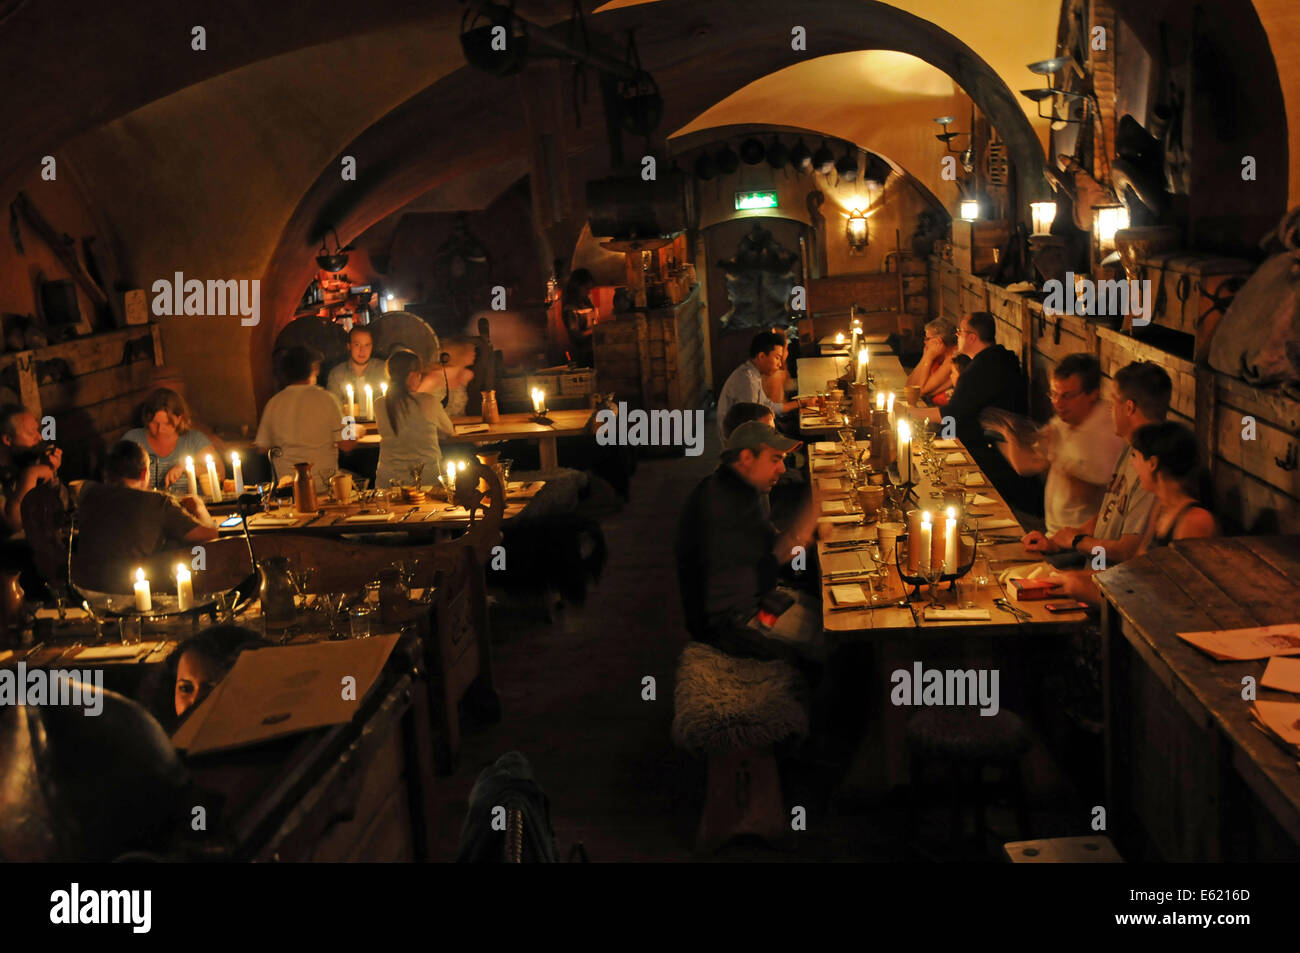 People at indoor restaurant built underground in a cave in the Old Town called Gamla Stan in Stockholm - Stock Image